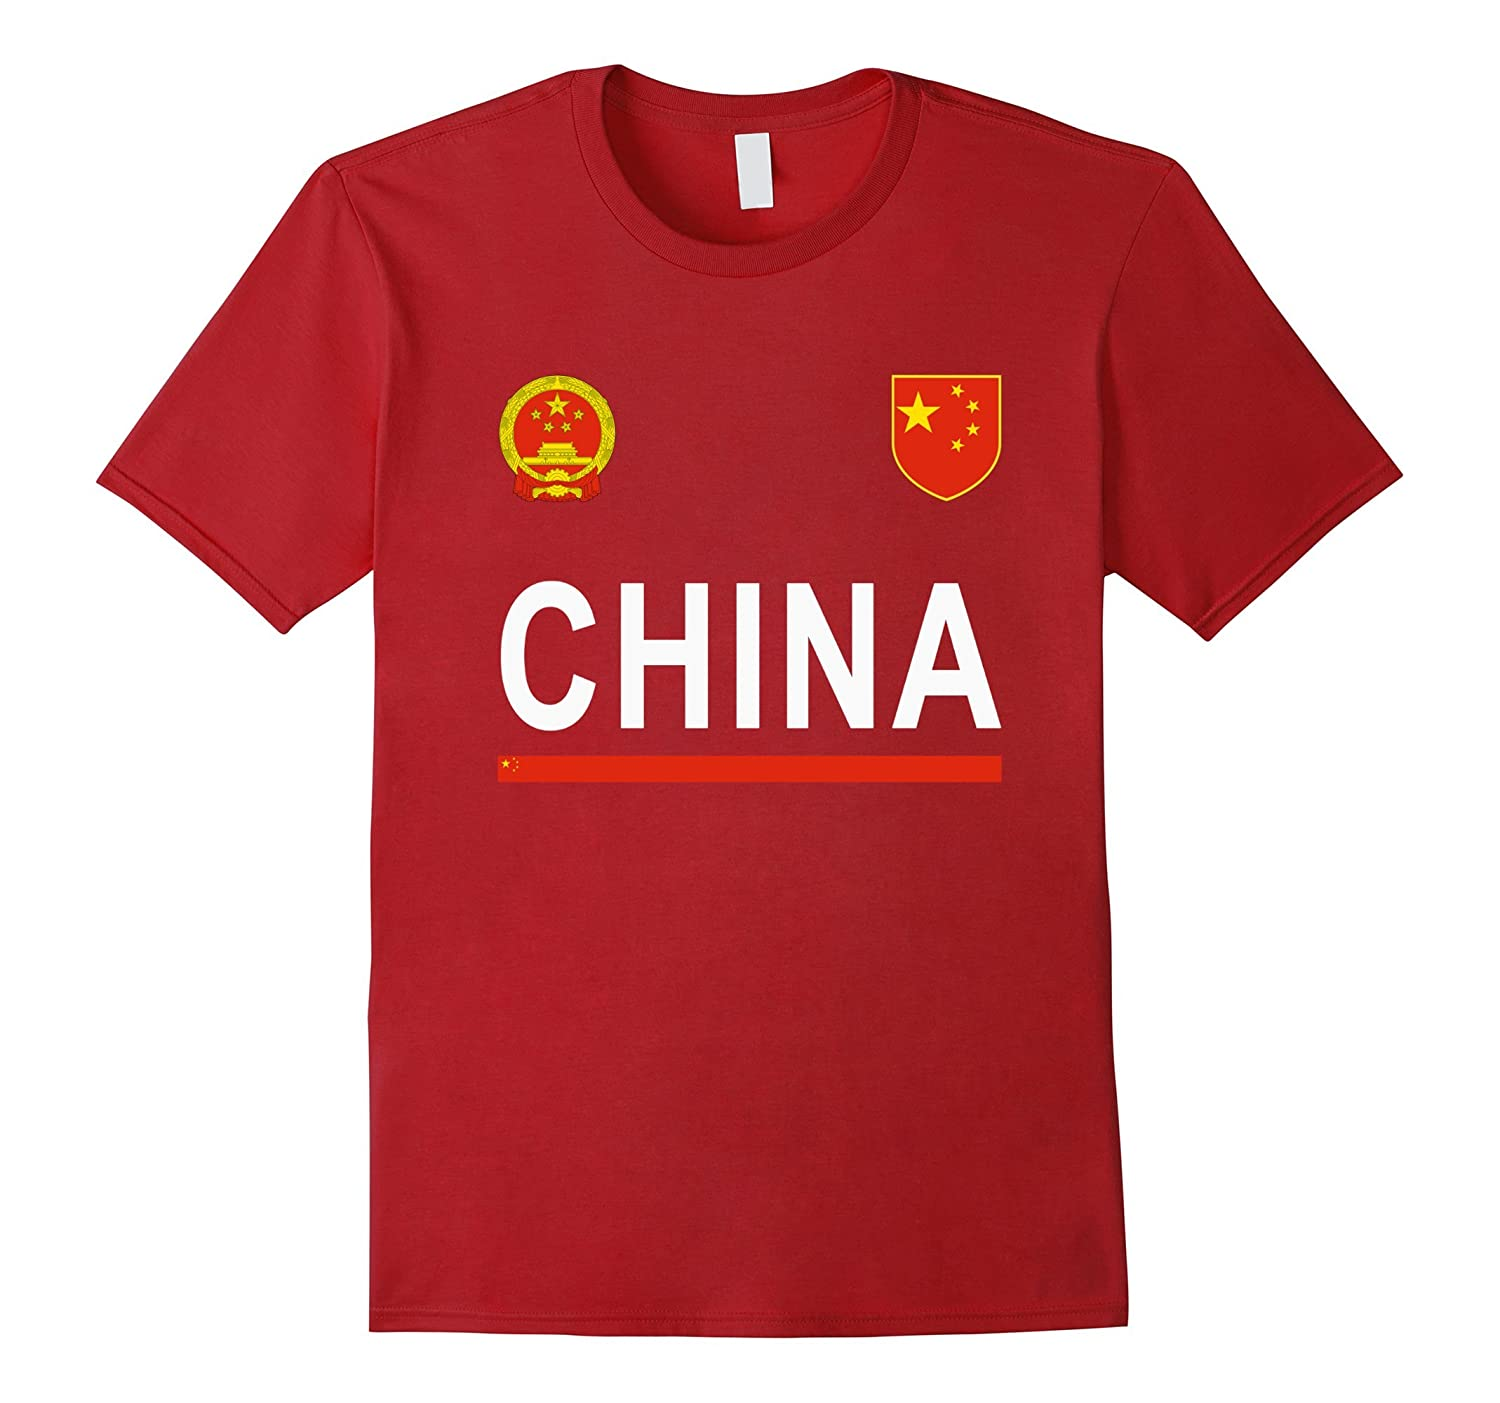 Cheap Soccer Shirts From China - Cotswold Hire 0481ef923